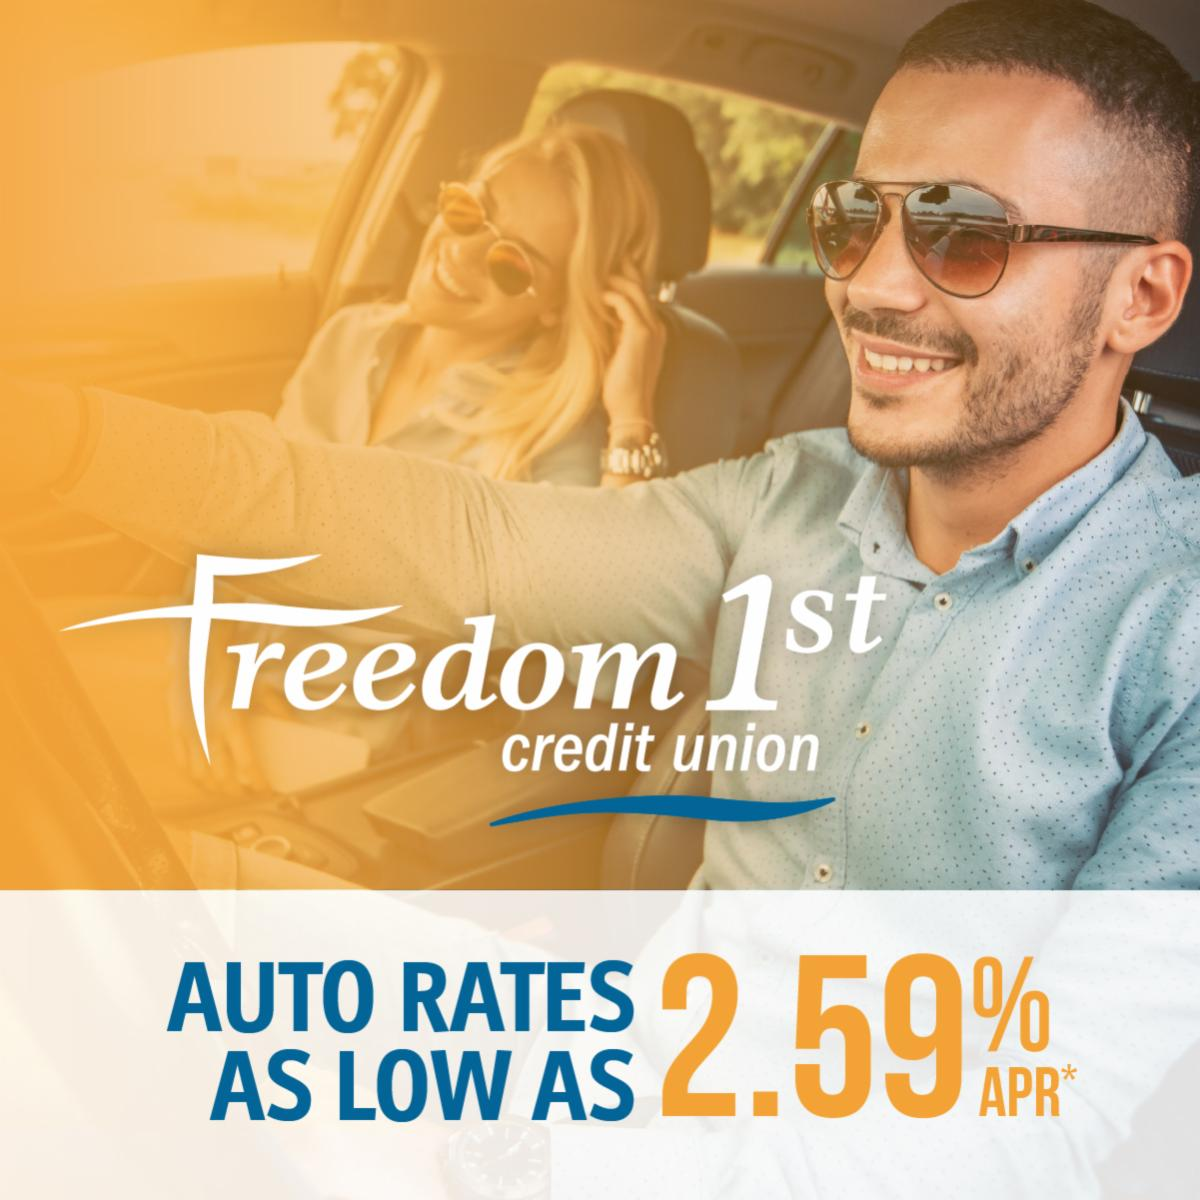 Freedom 1st Credit Union - Auto Loan Rates as Low as 2.59% APR*